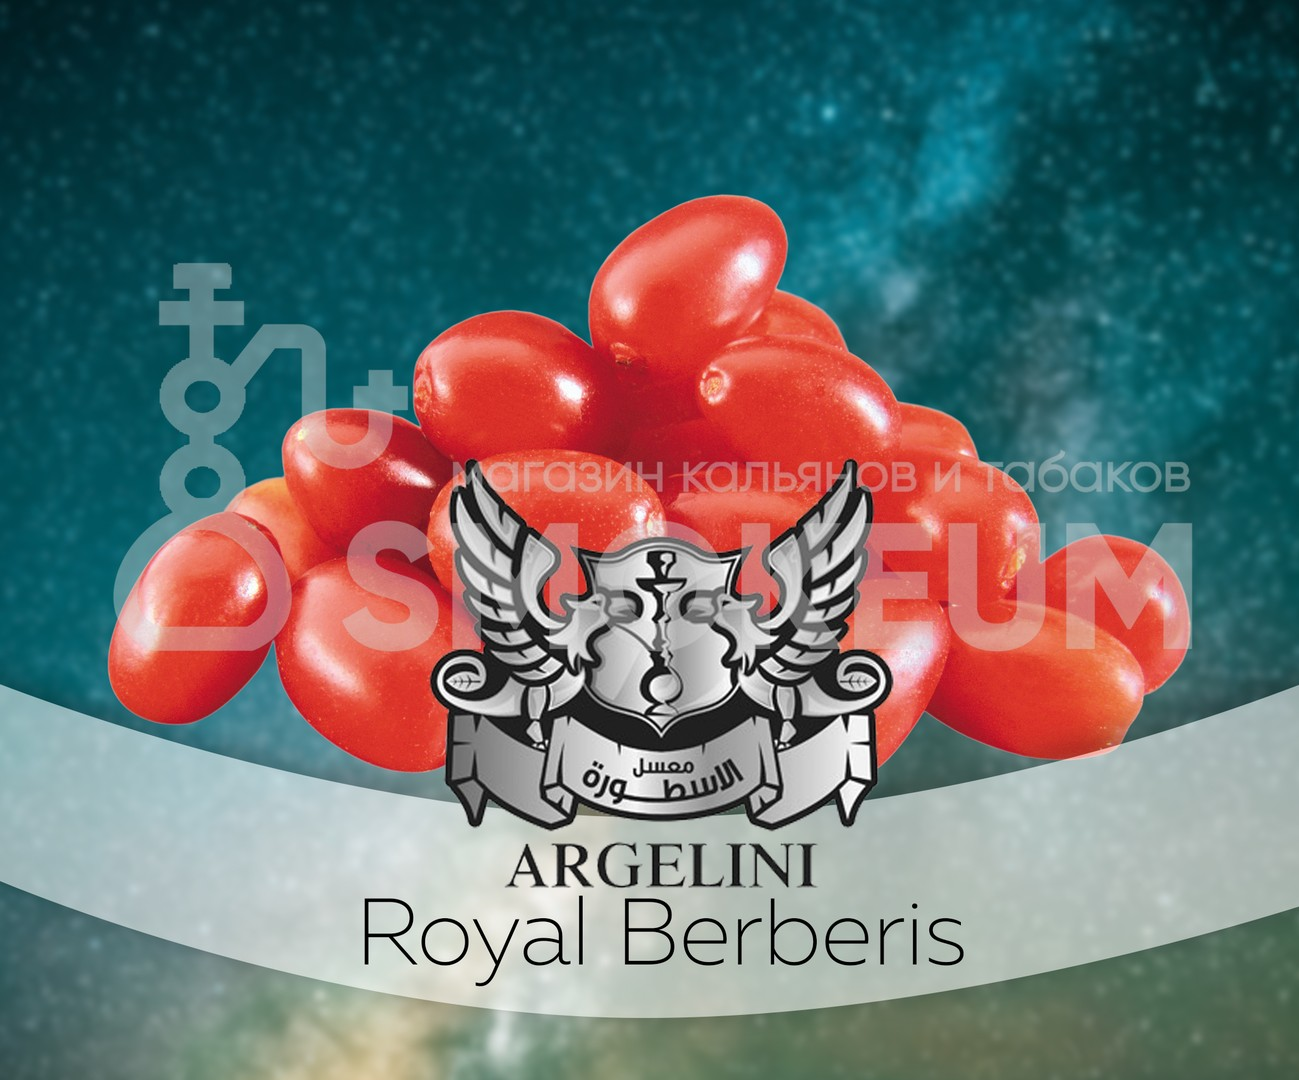 Табак Argelini - Royal Berberis (Королевский Барбарис) 50 гр